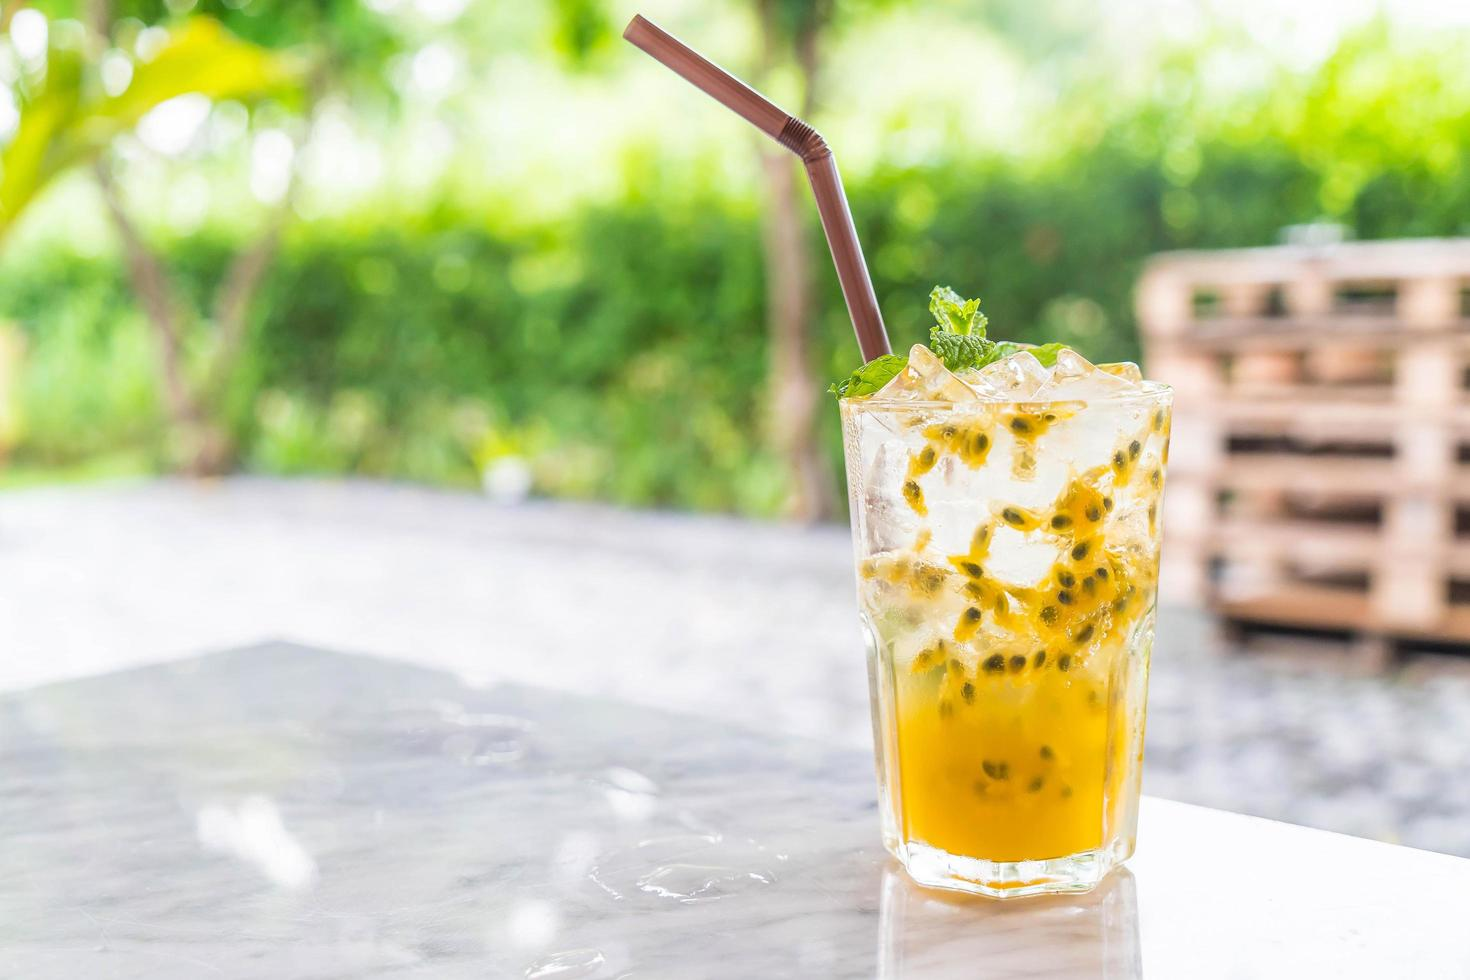 Passion fruit drink on table outside  photo